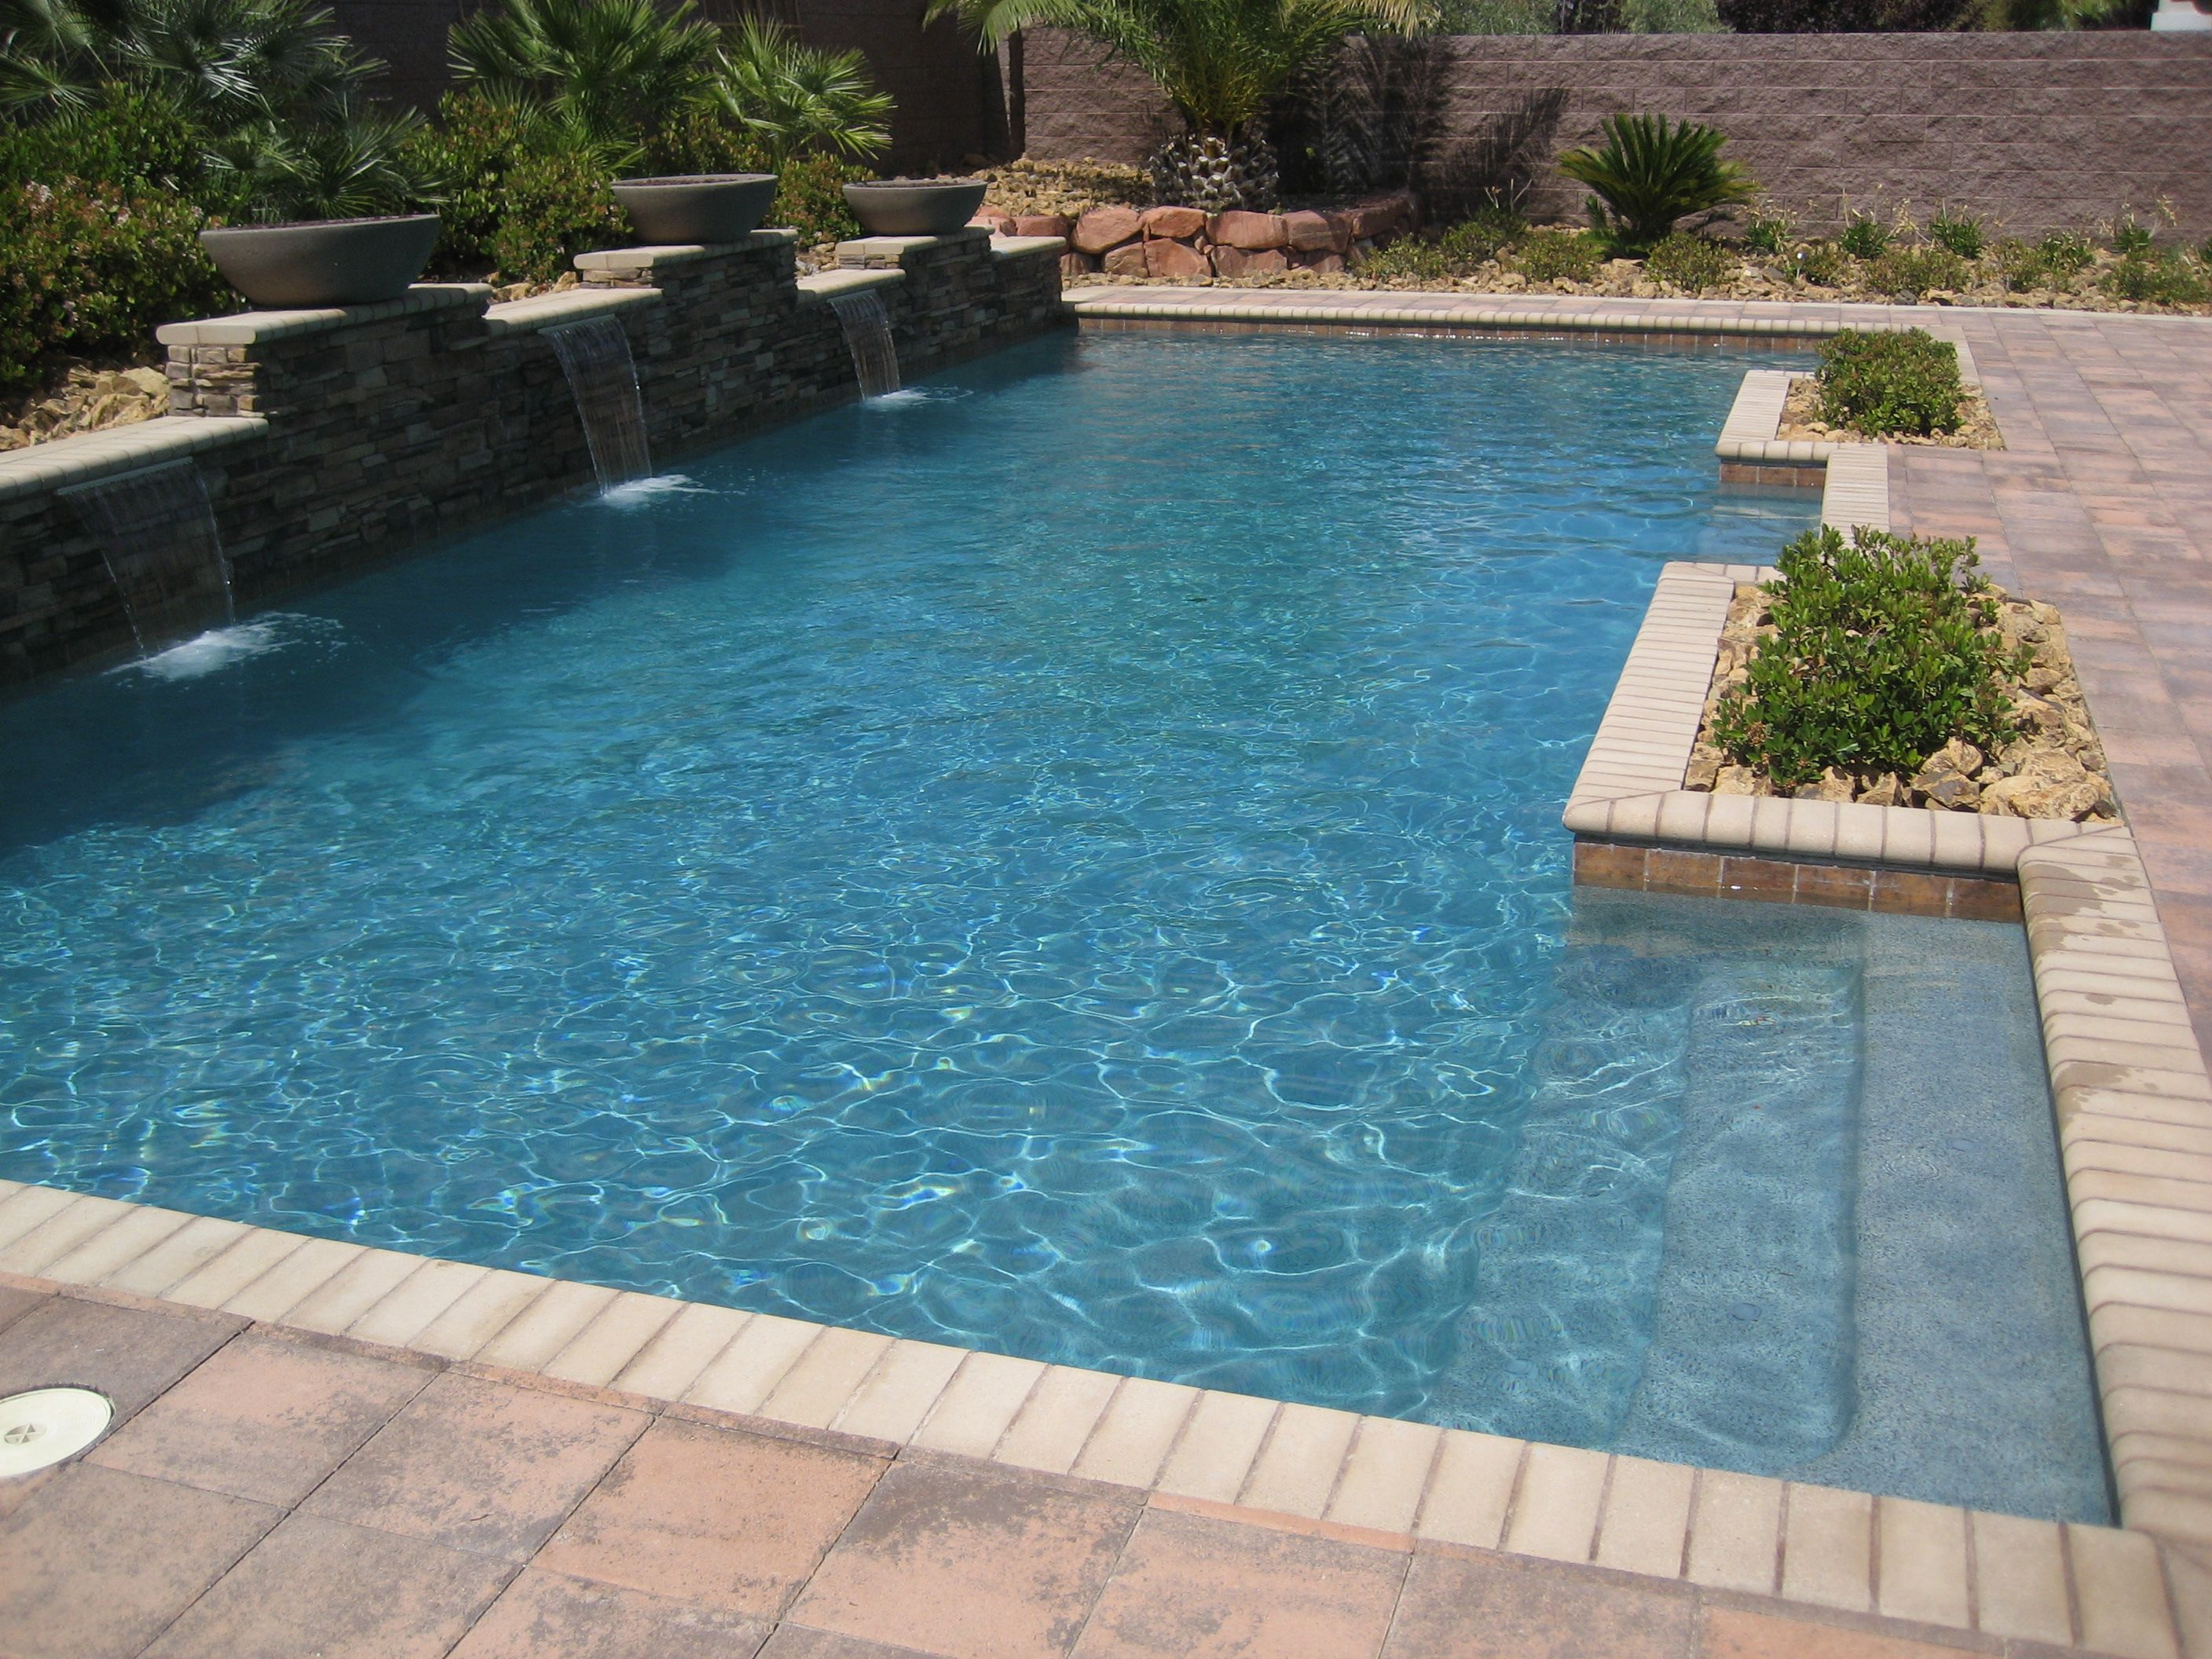 custom swimming pool designs. Custom Swimming Pool Design With Integrated Landscape And Fire-bowls For Nighttime Ambience. Designs